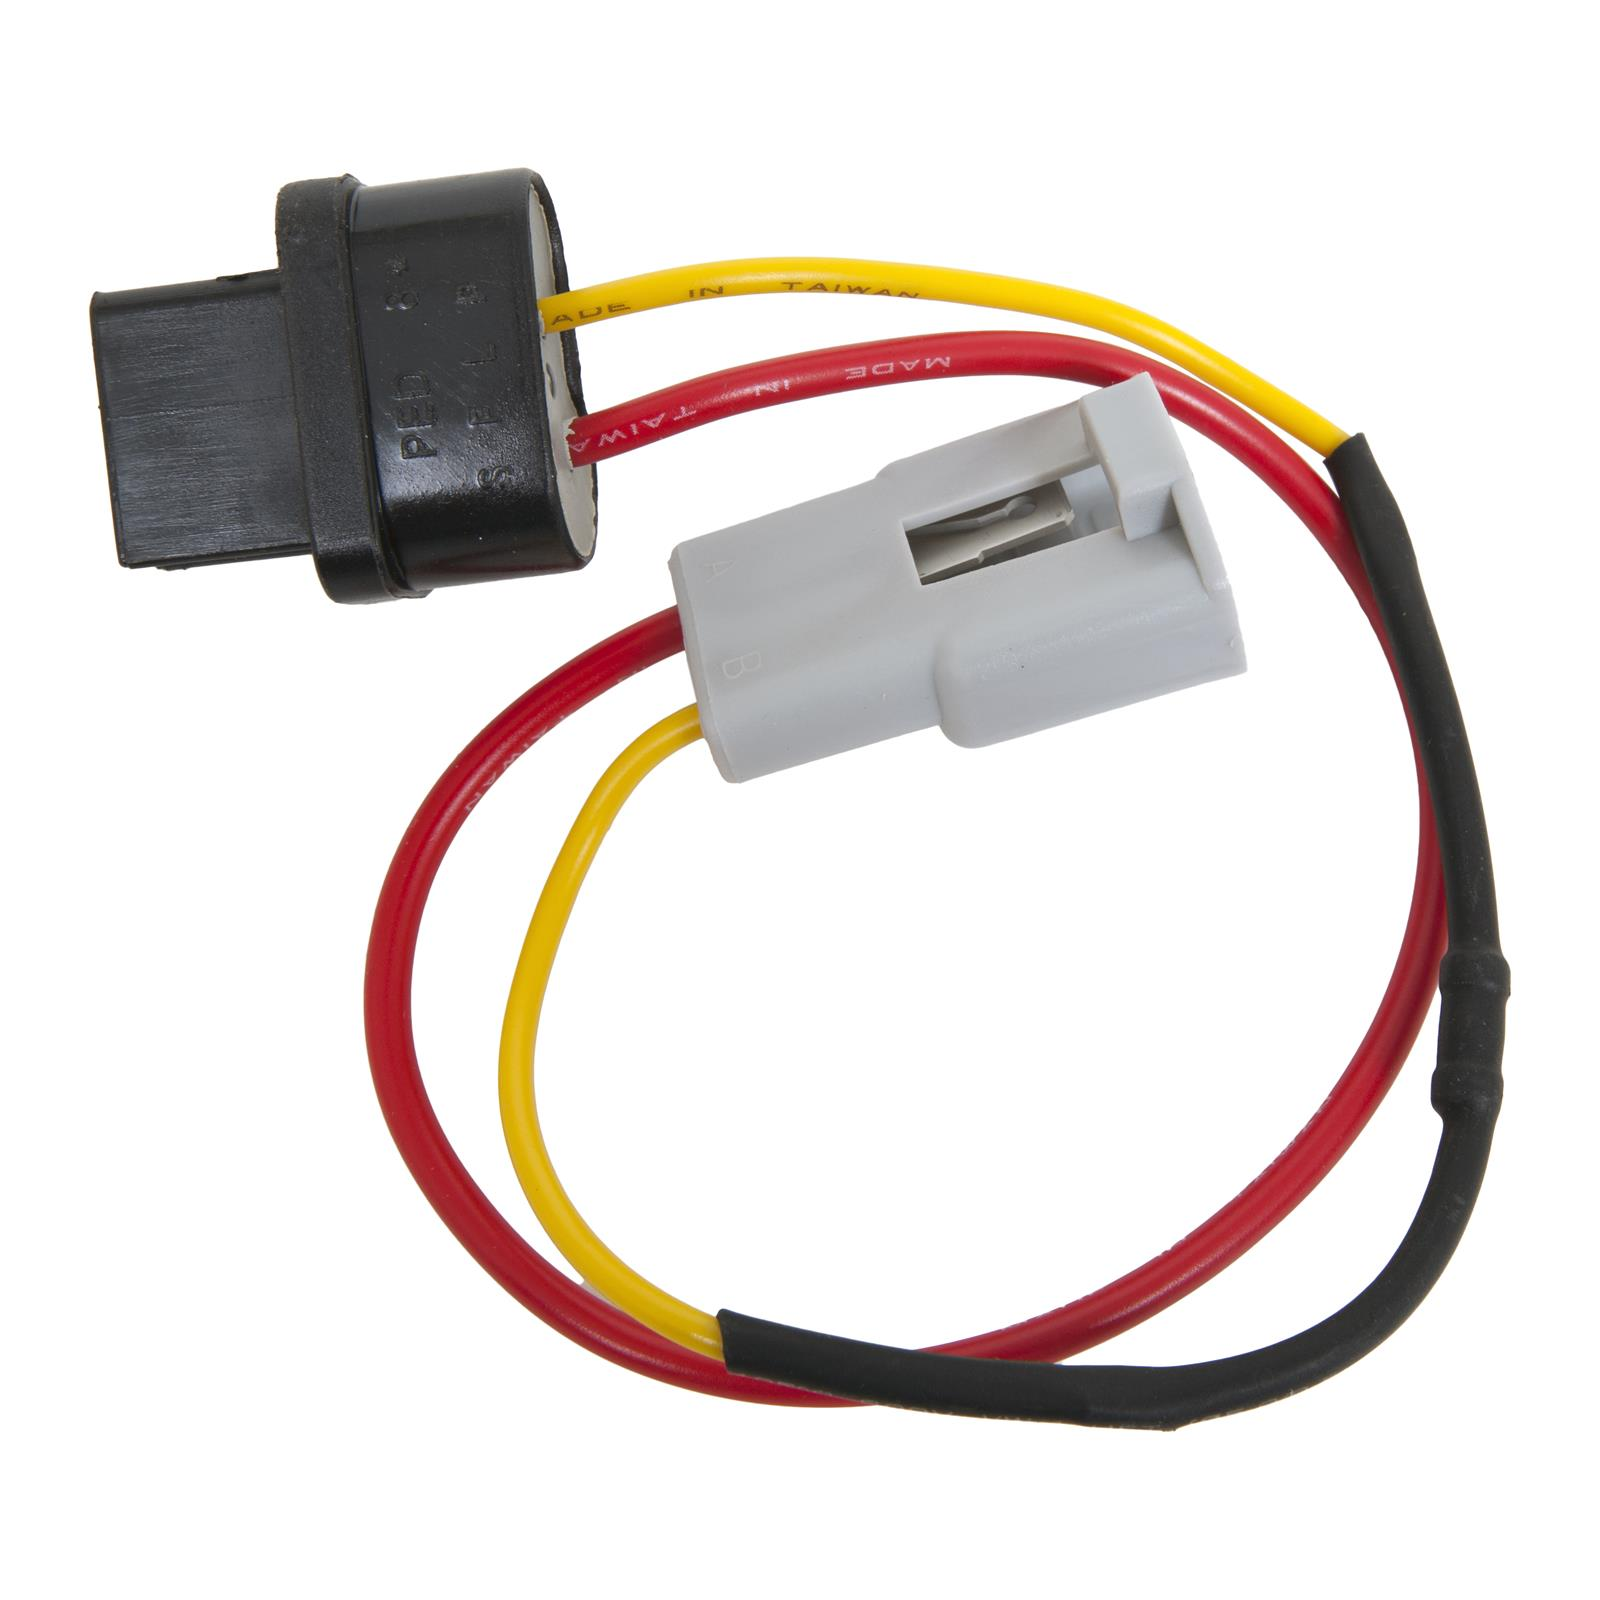 ado pt2145_xl acdelco replacement wiring harness connectors pt2145 free Automotive Wire Connectors at bakdesigns.co